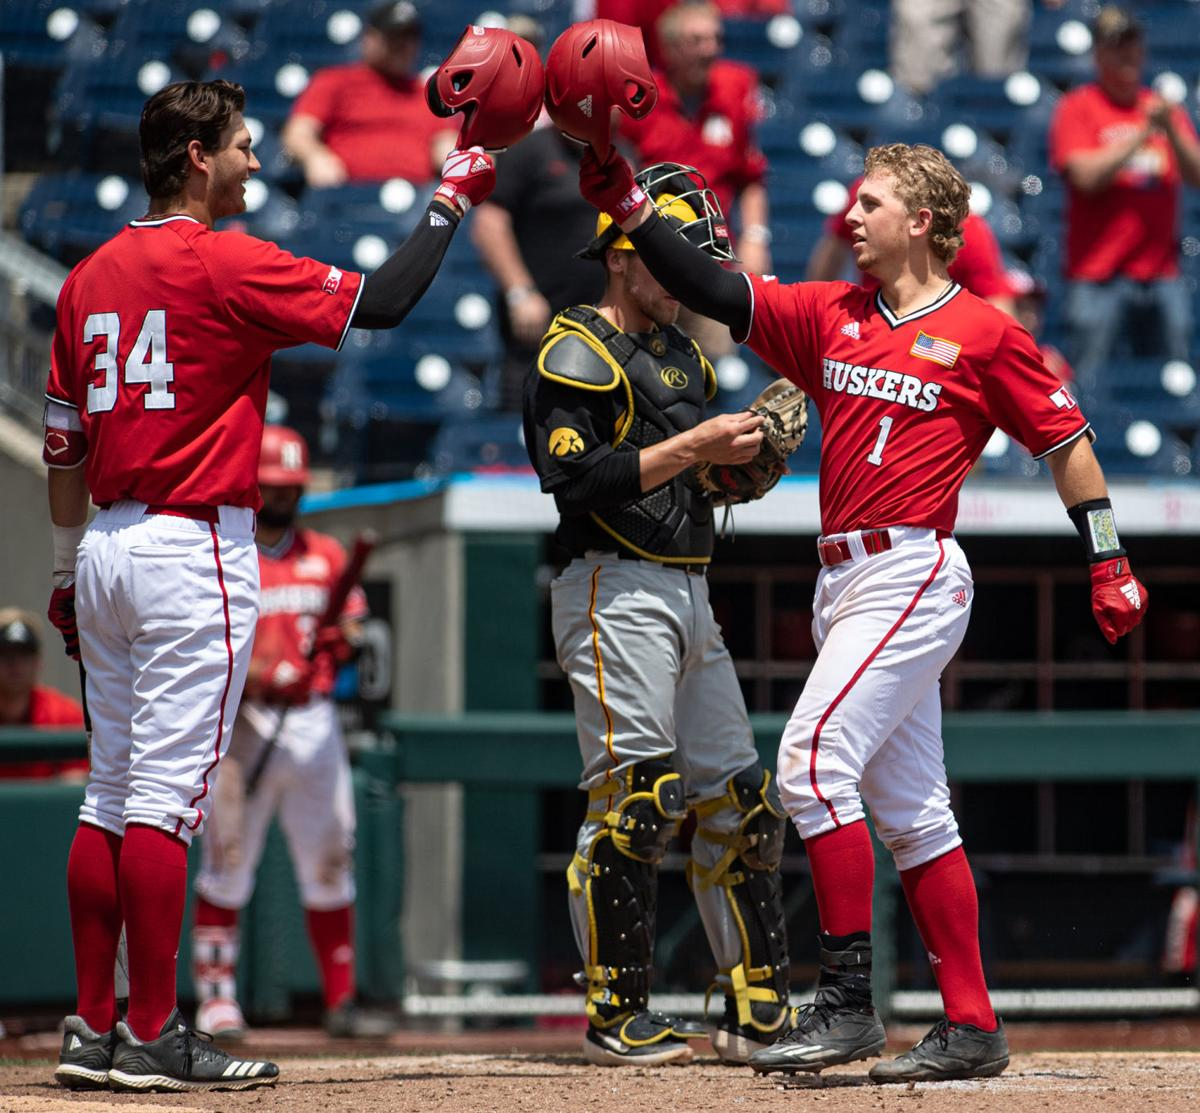 Nebraska vs. Iowa, 5.24